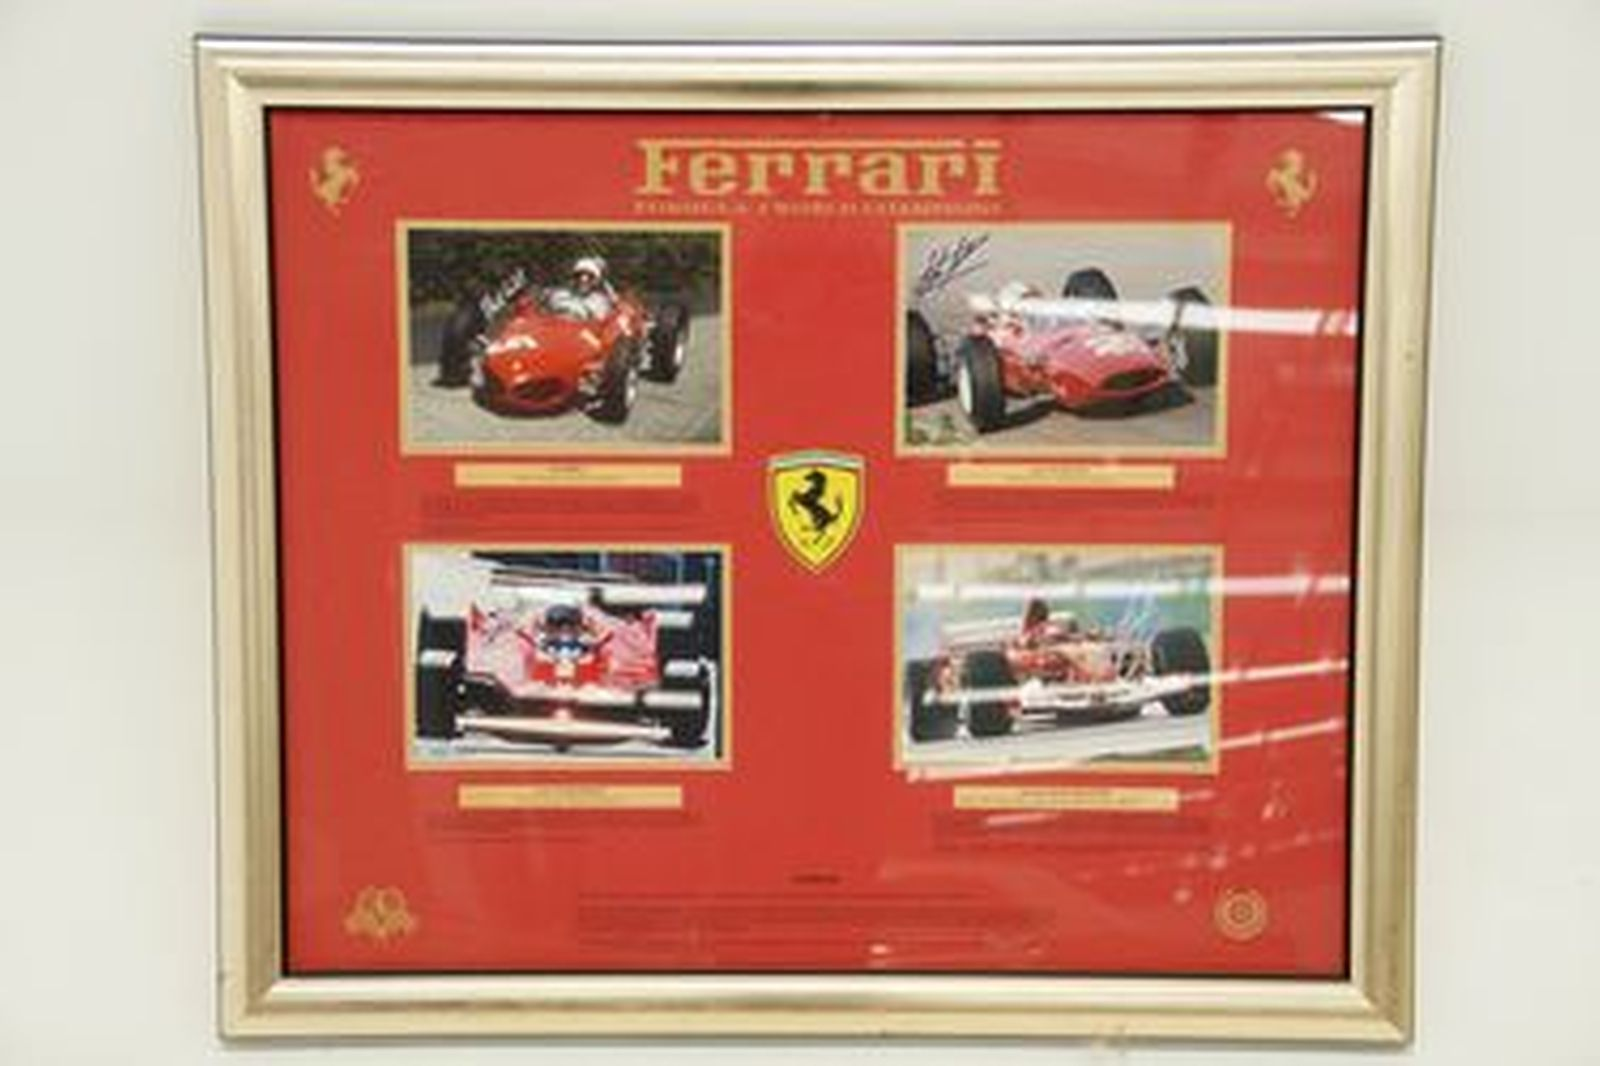 Framed Signed Print - Ferrari 4 x F1 World Champions (signed by each)